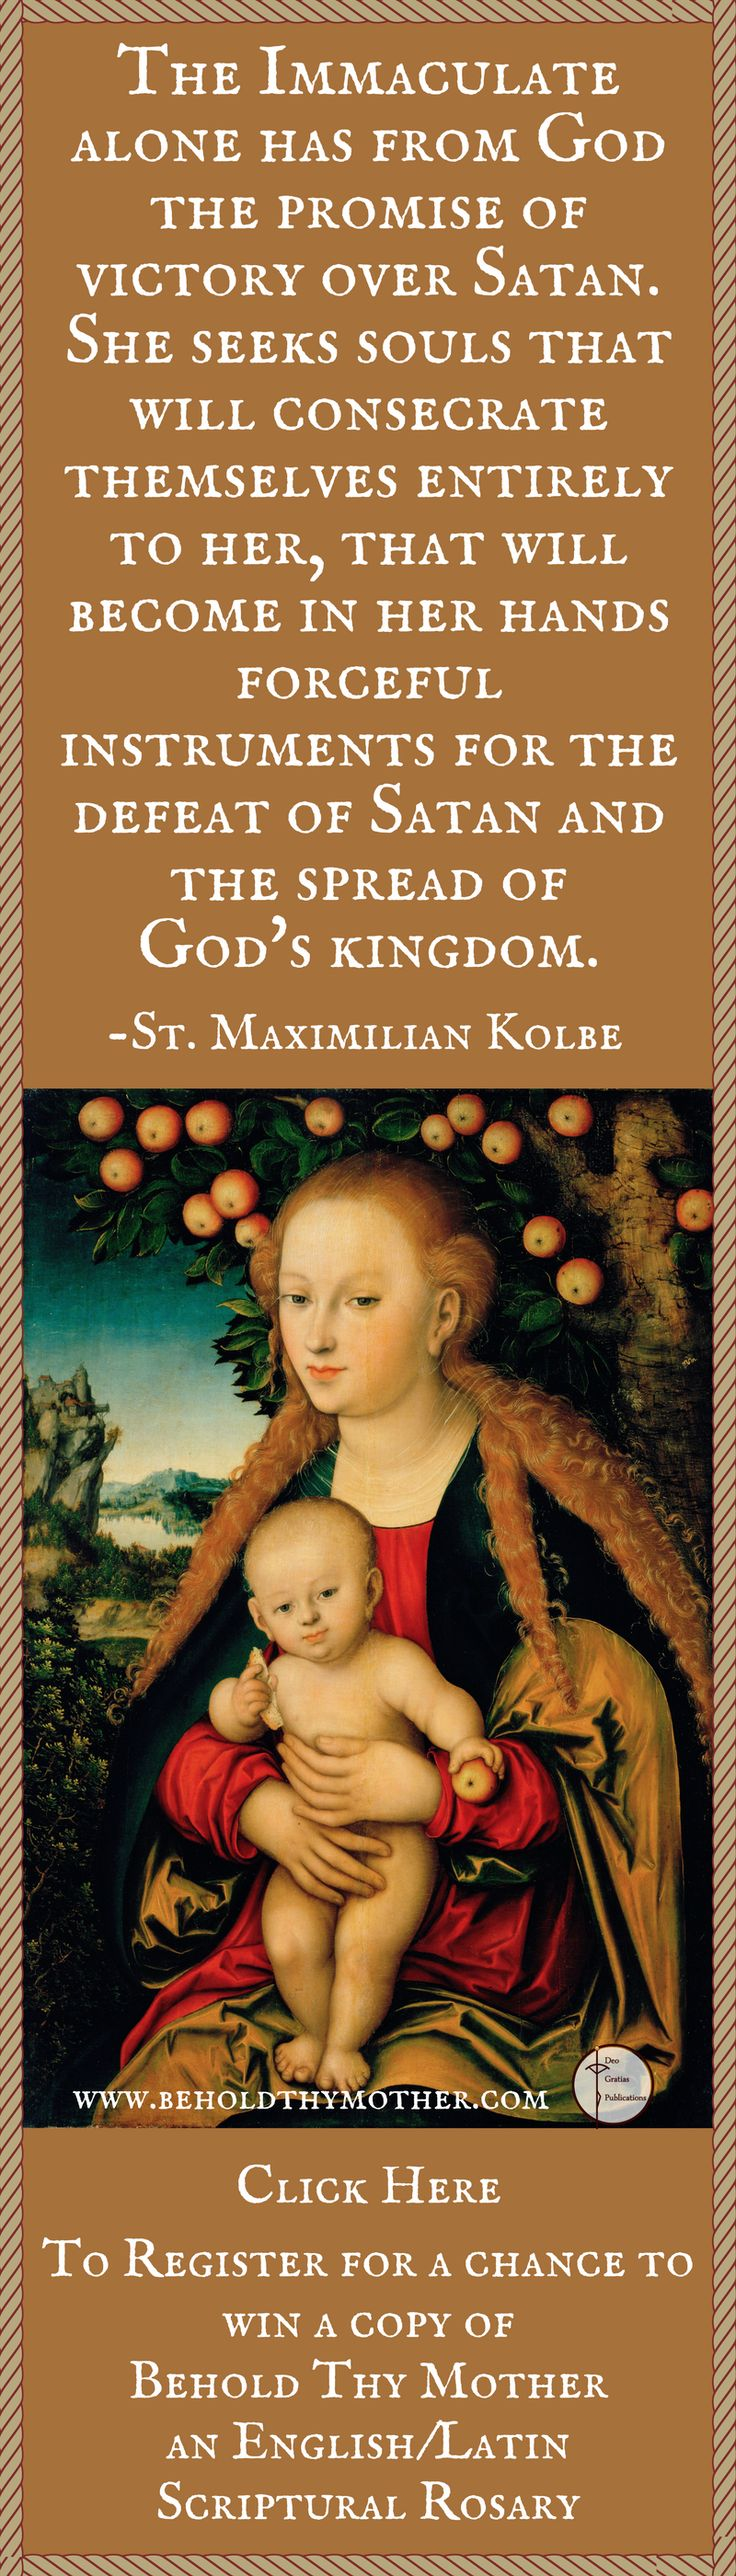 """Lucas Cranach """"The Virgin and Child Under an Apple Tree"""", with St. Maximilian Kolbe quote. Register for a chance to win a copy of """"Behold Thy Mother"""" an English/Latin Scriptural Rosary book."""